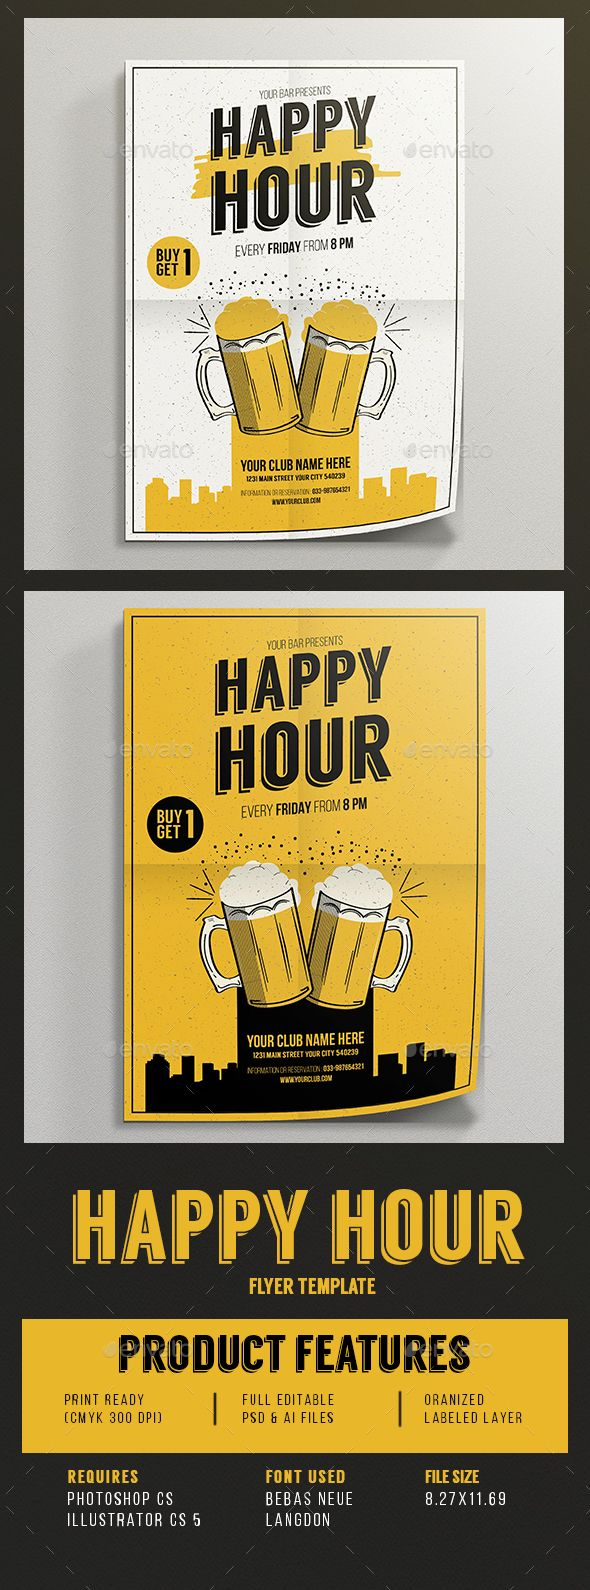 Happy Hour Beer Promotion Flyer  Flyer Template Happy Hour And